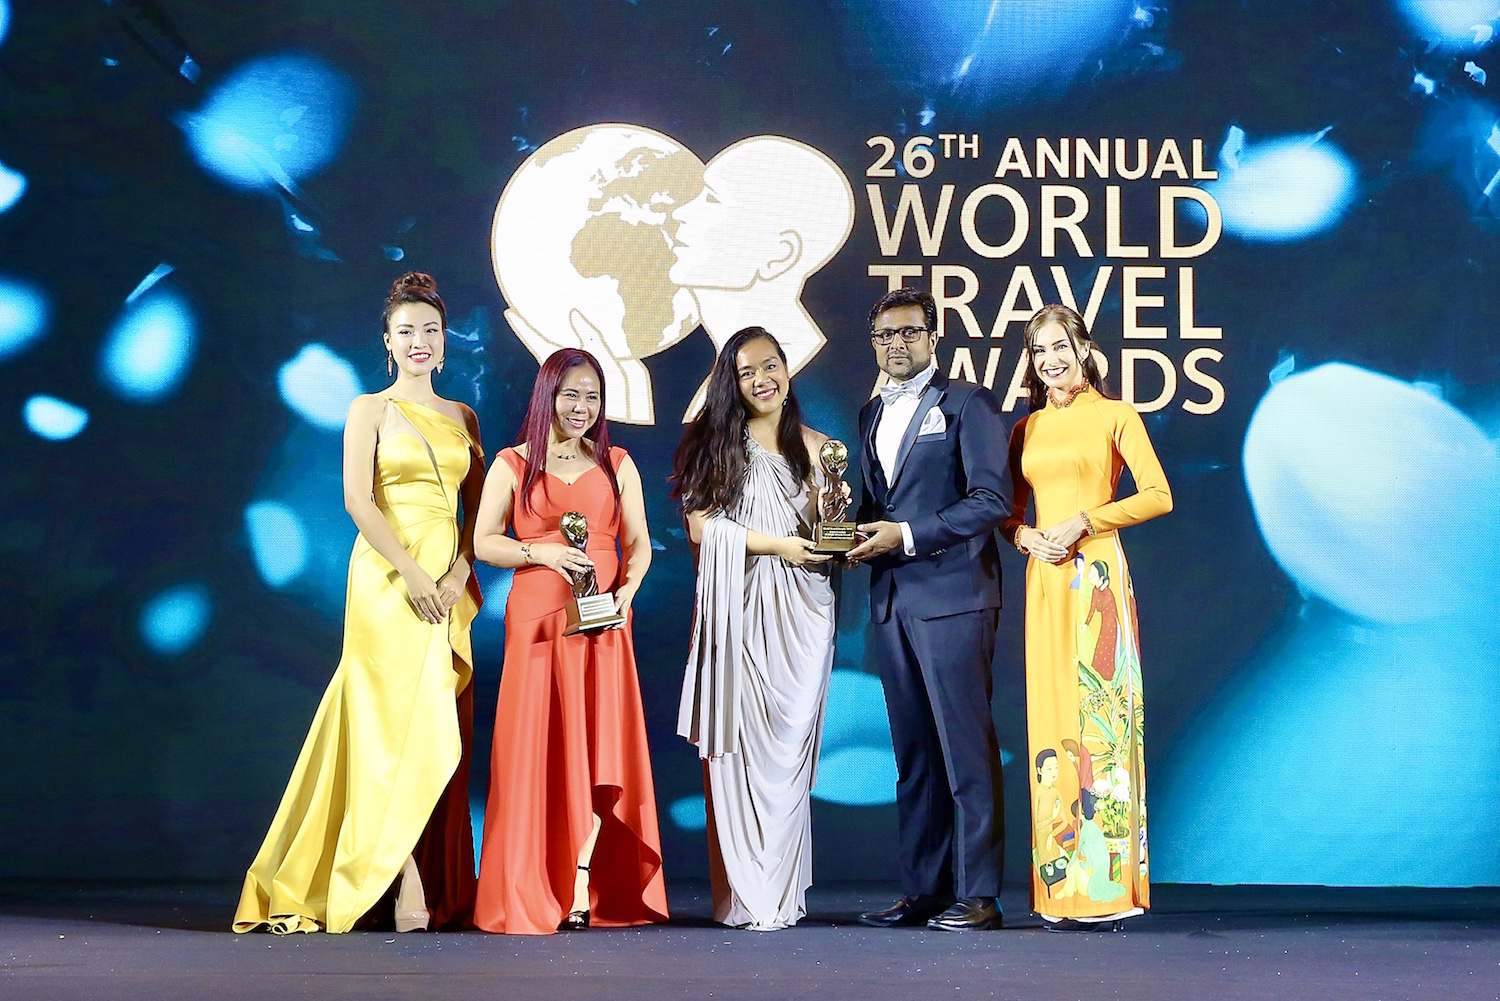 VIETNAMNEWS: DOUBLE CELEBRATION FOR SALINDA RESORT PHU QUOC ISLAND AT WTA 2019